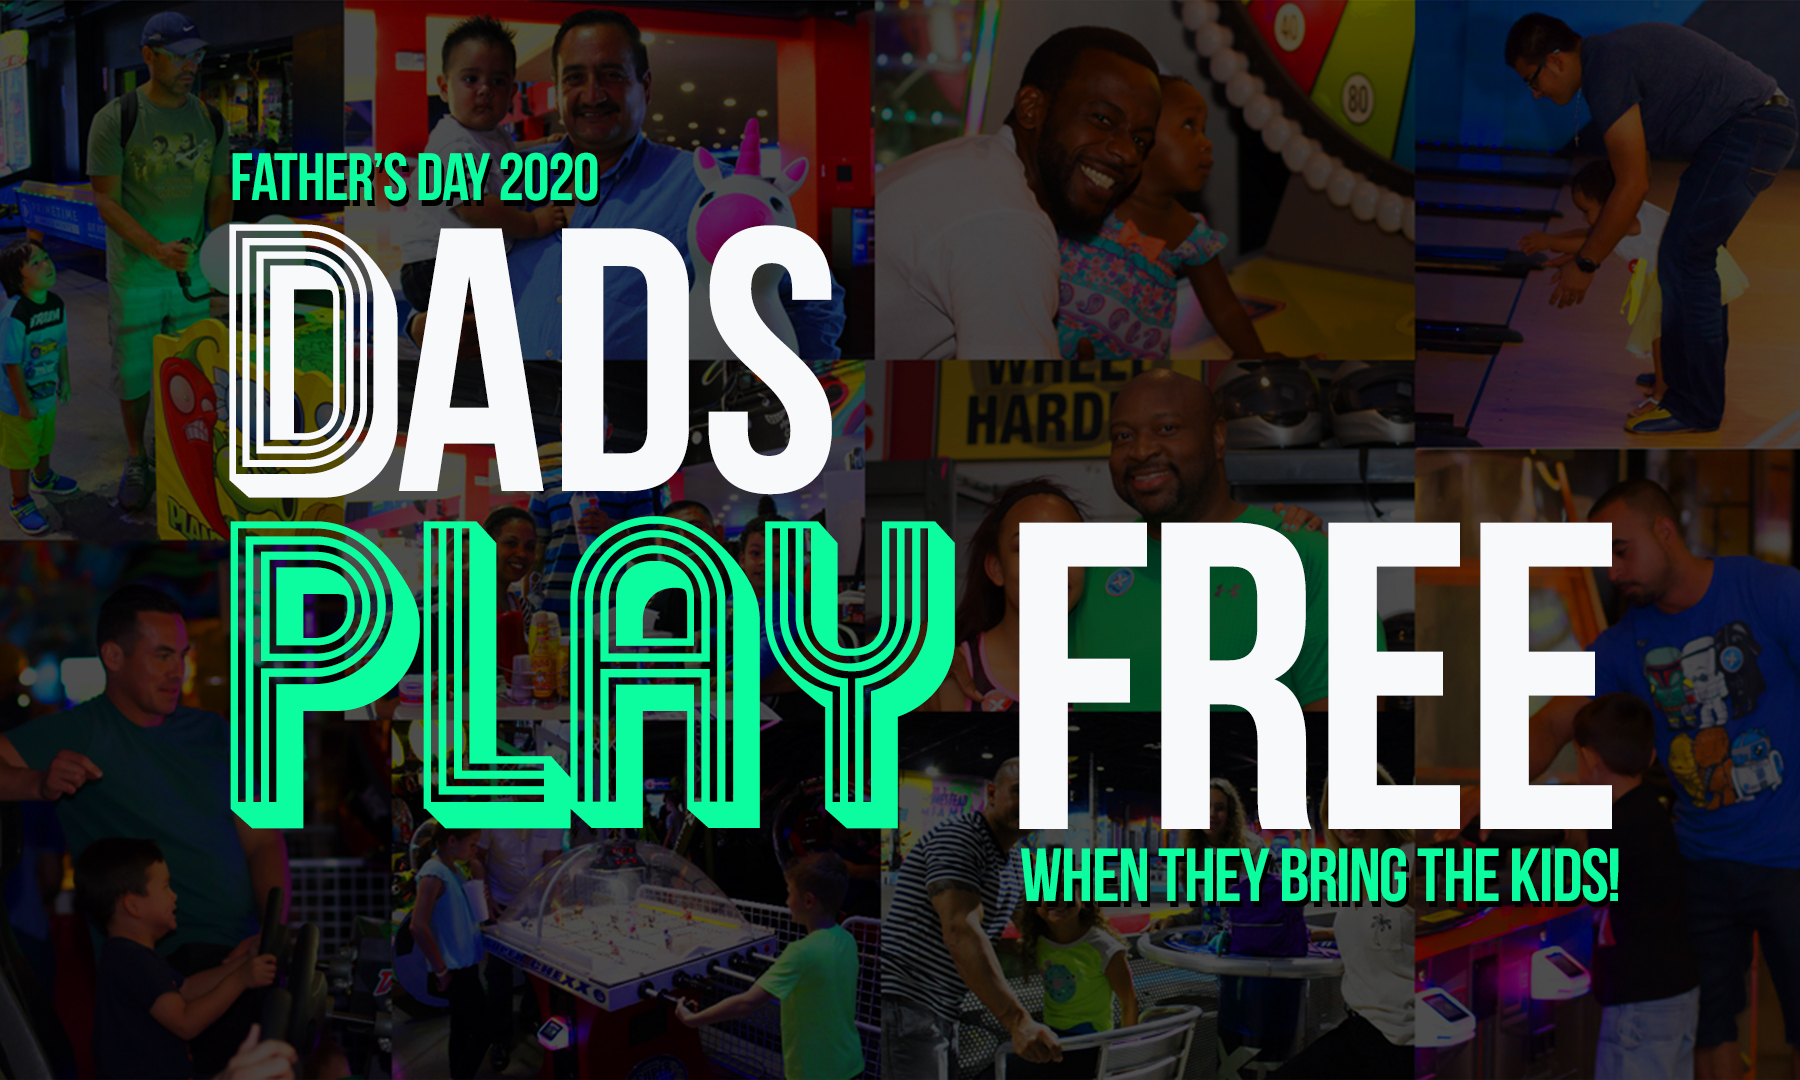 Dads Play FREE on Father's Day